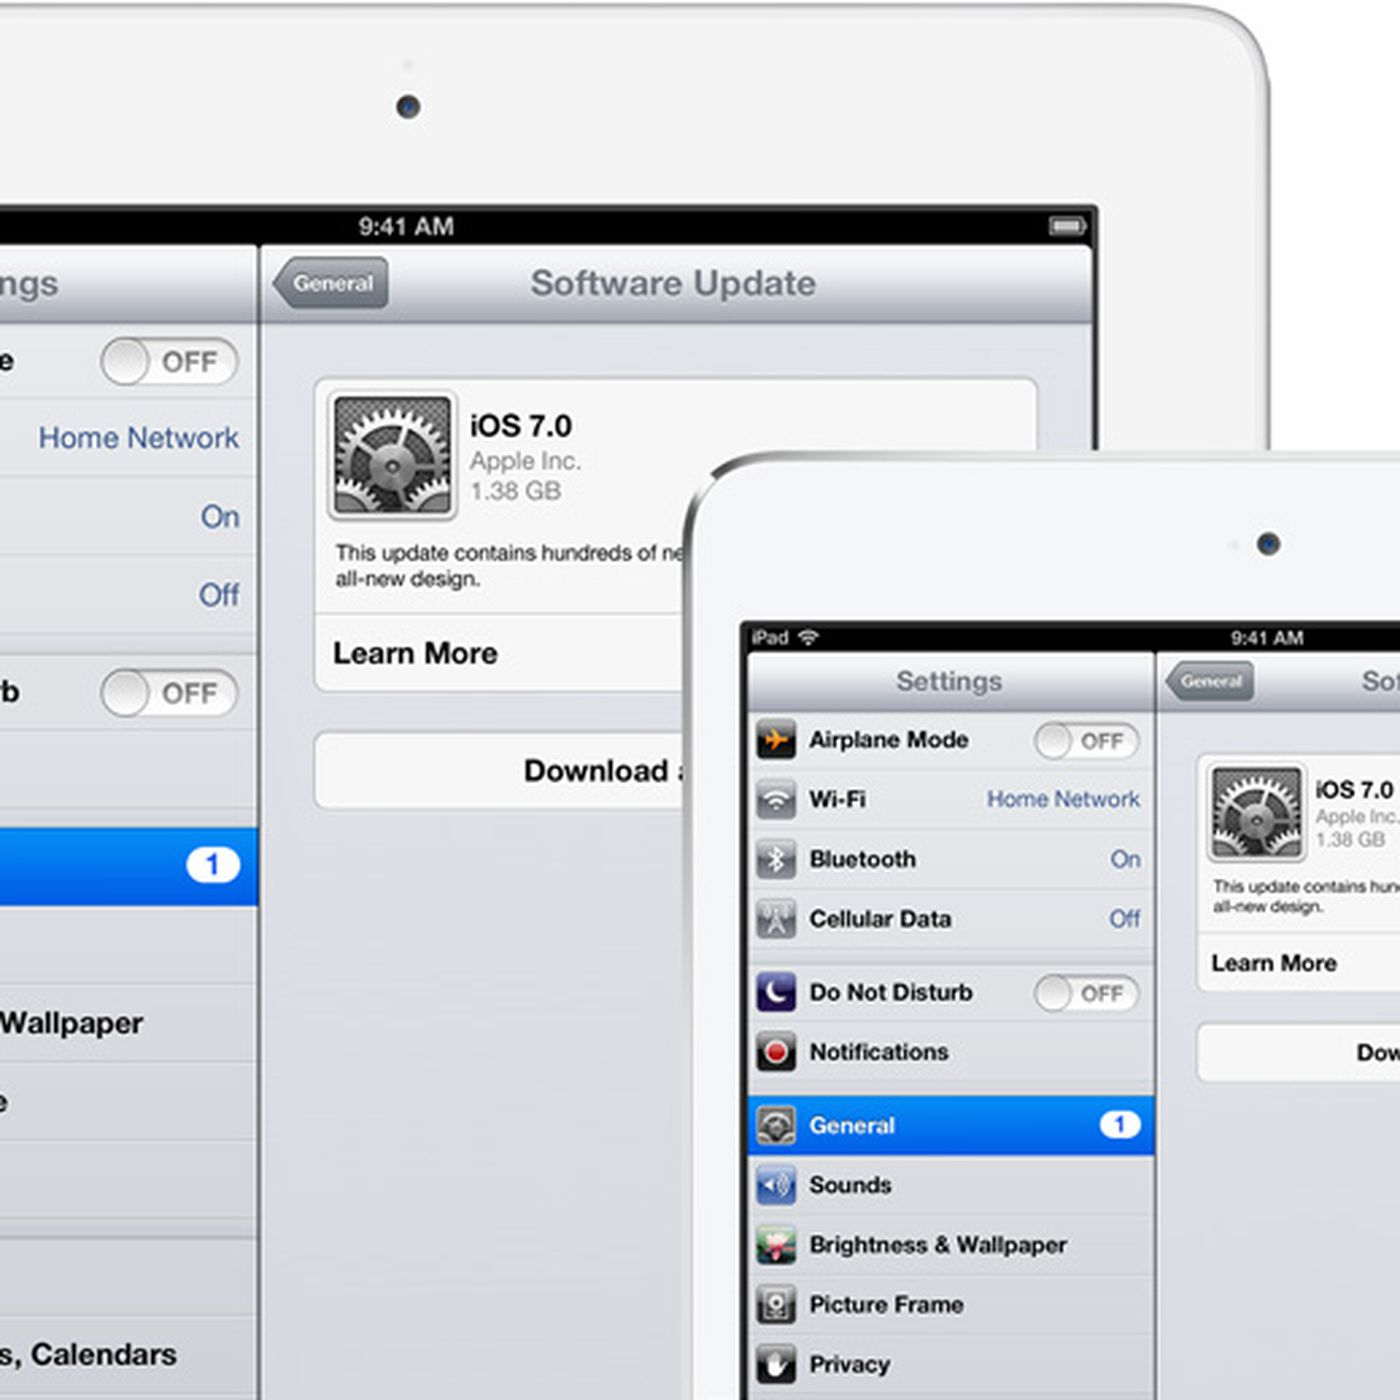 iOS 7 now available for iPhone, iPad, and iPod touch - The Verge